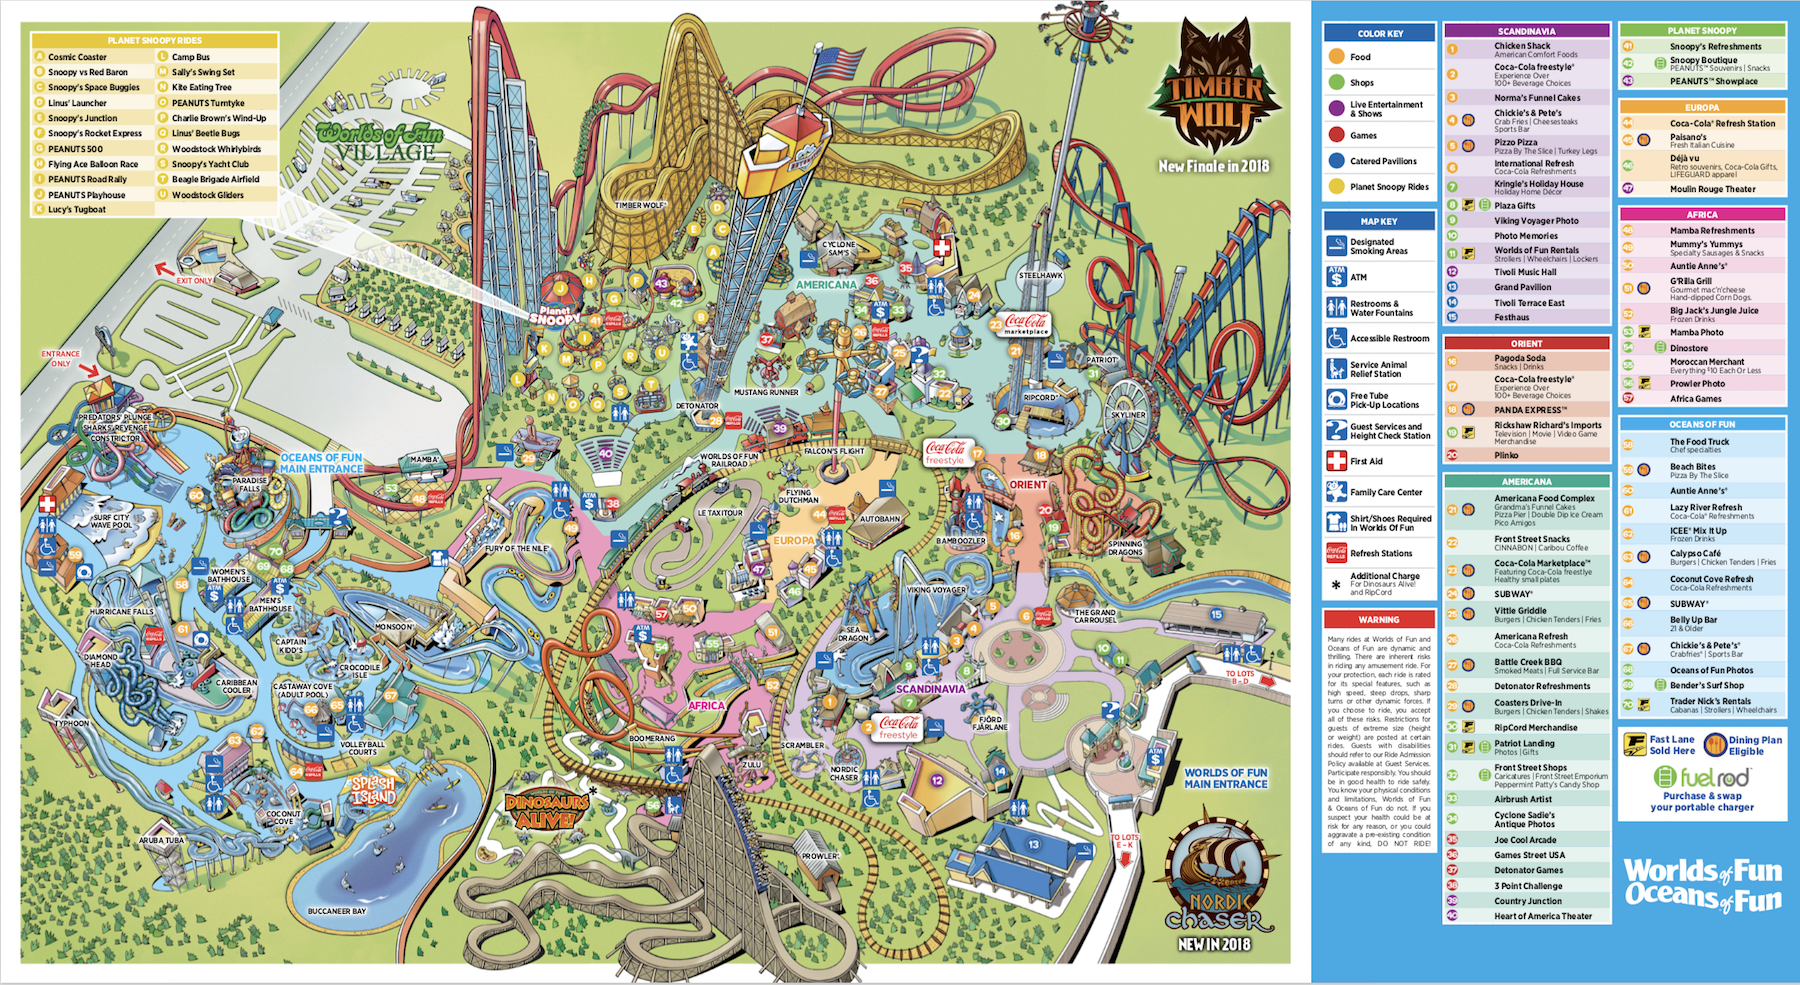 Worlds Of Fun Map Adding a World of Beauty   Worlds of Fun